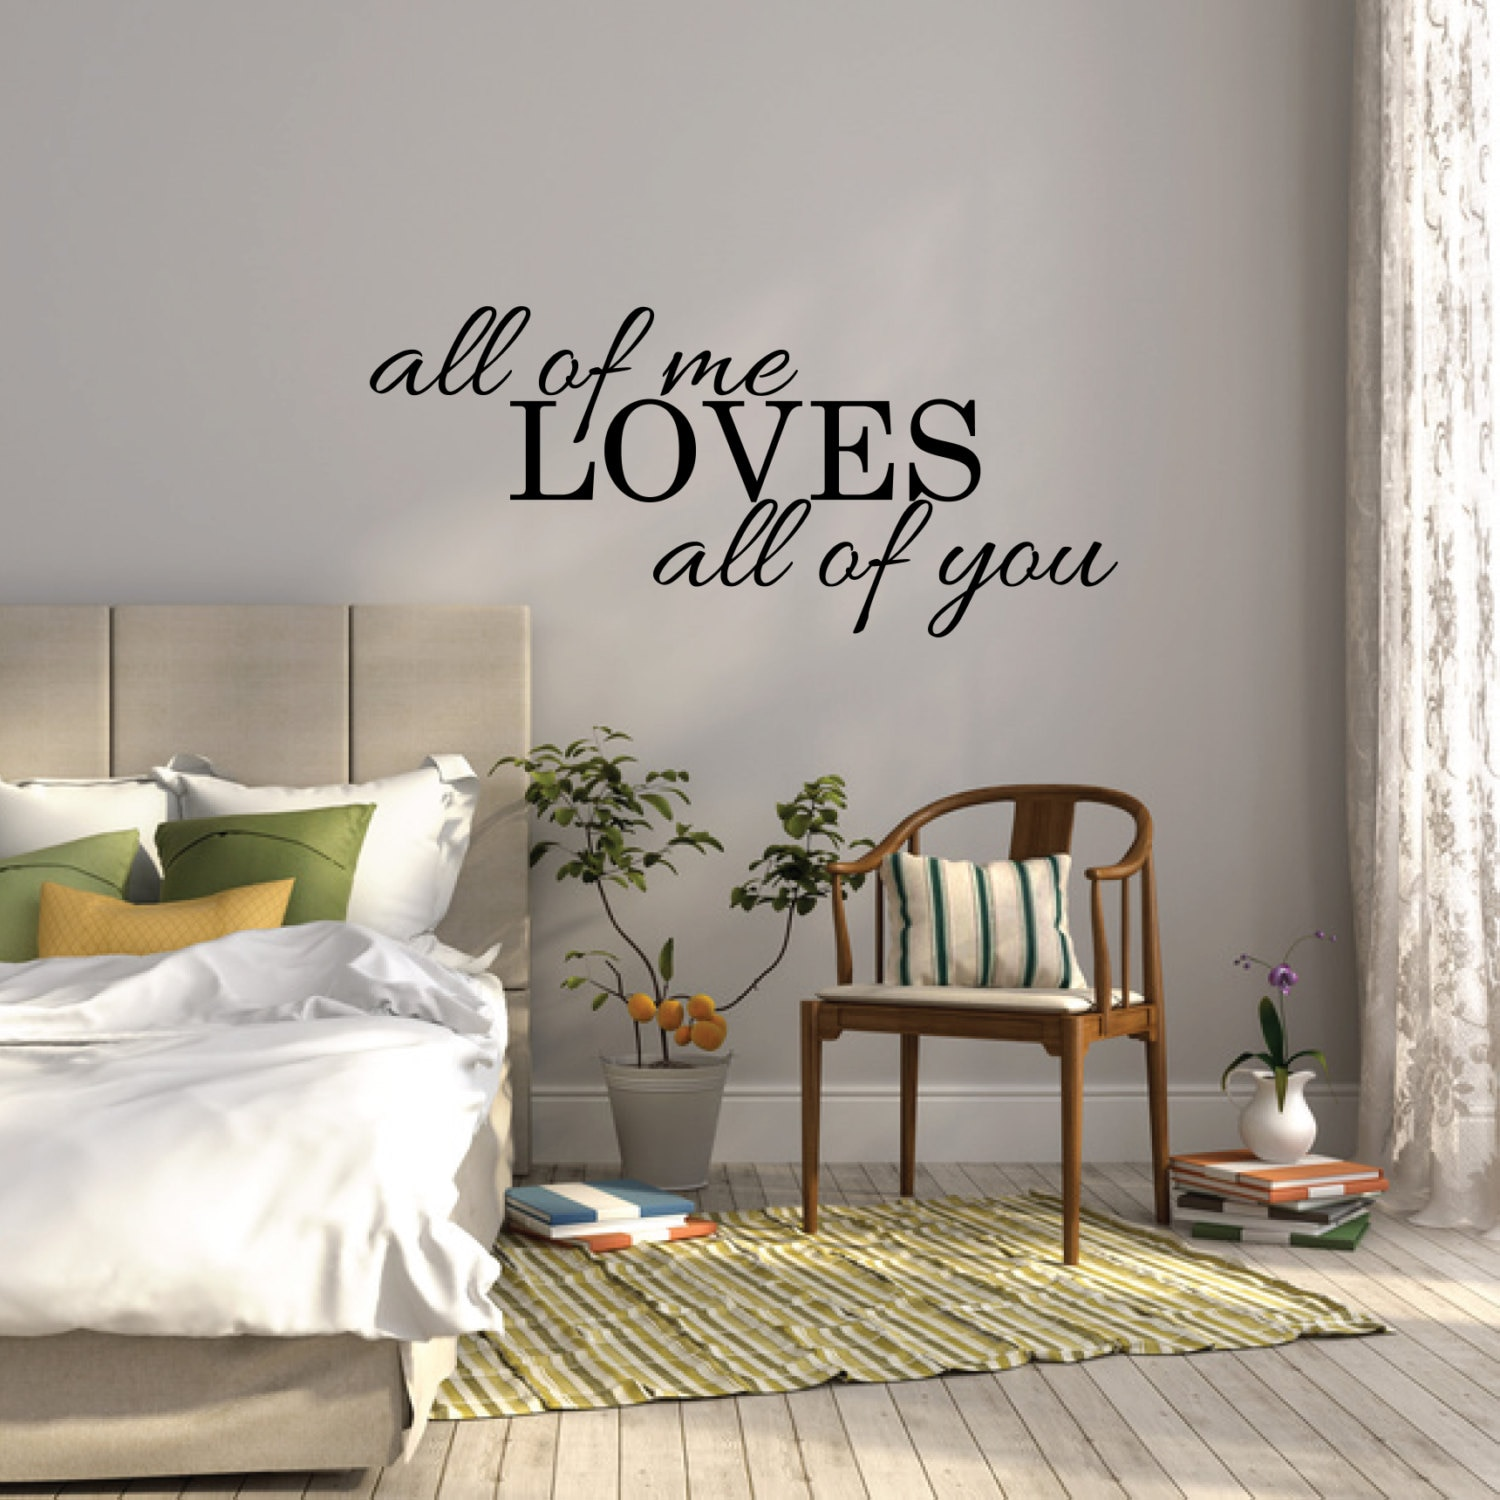 All of me loves all of you wall sticker bedroom wall decal etsy